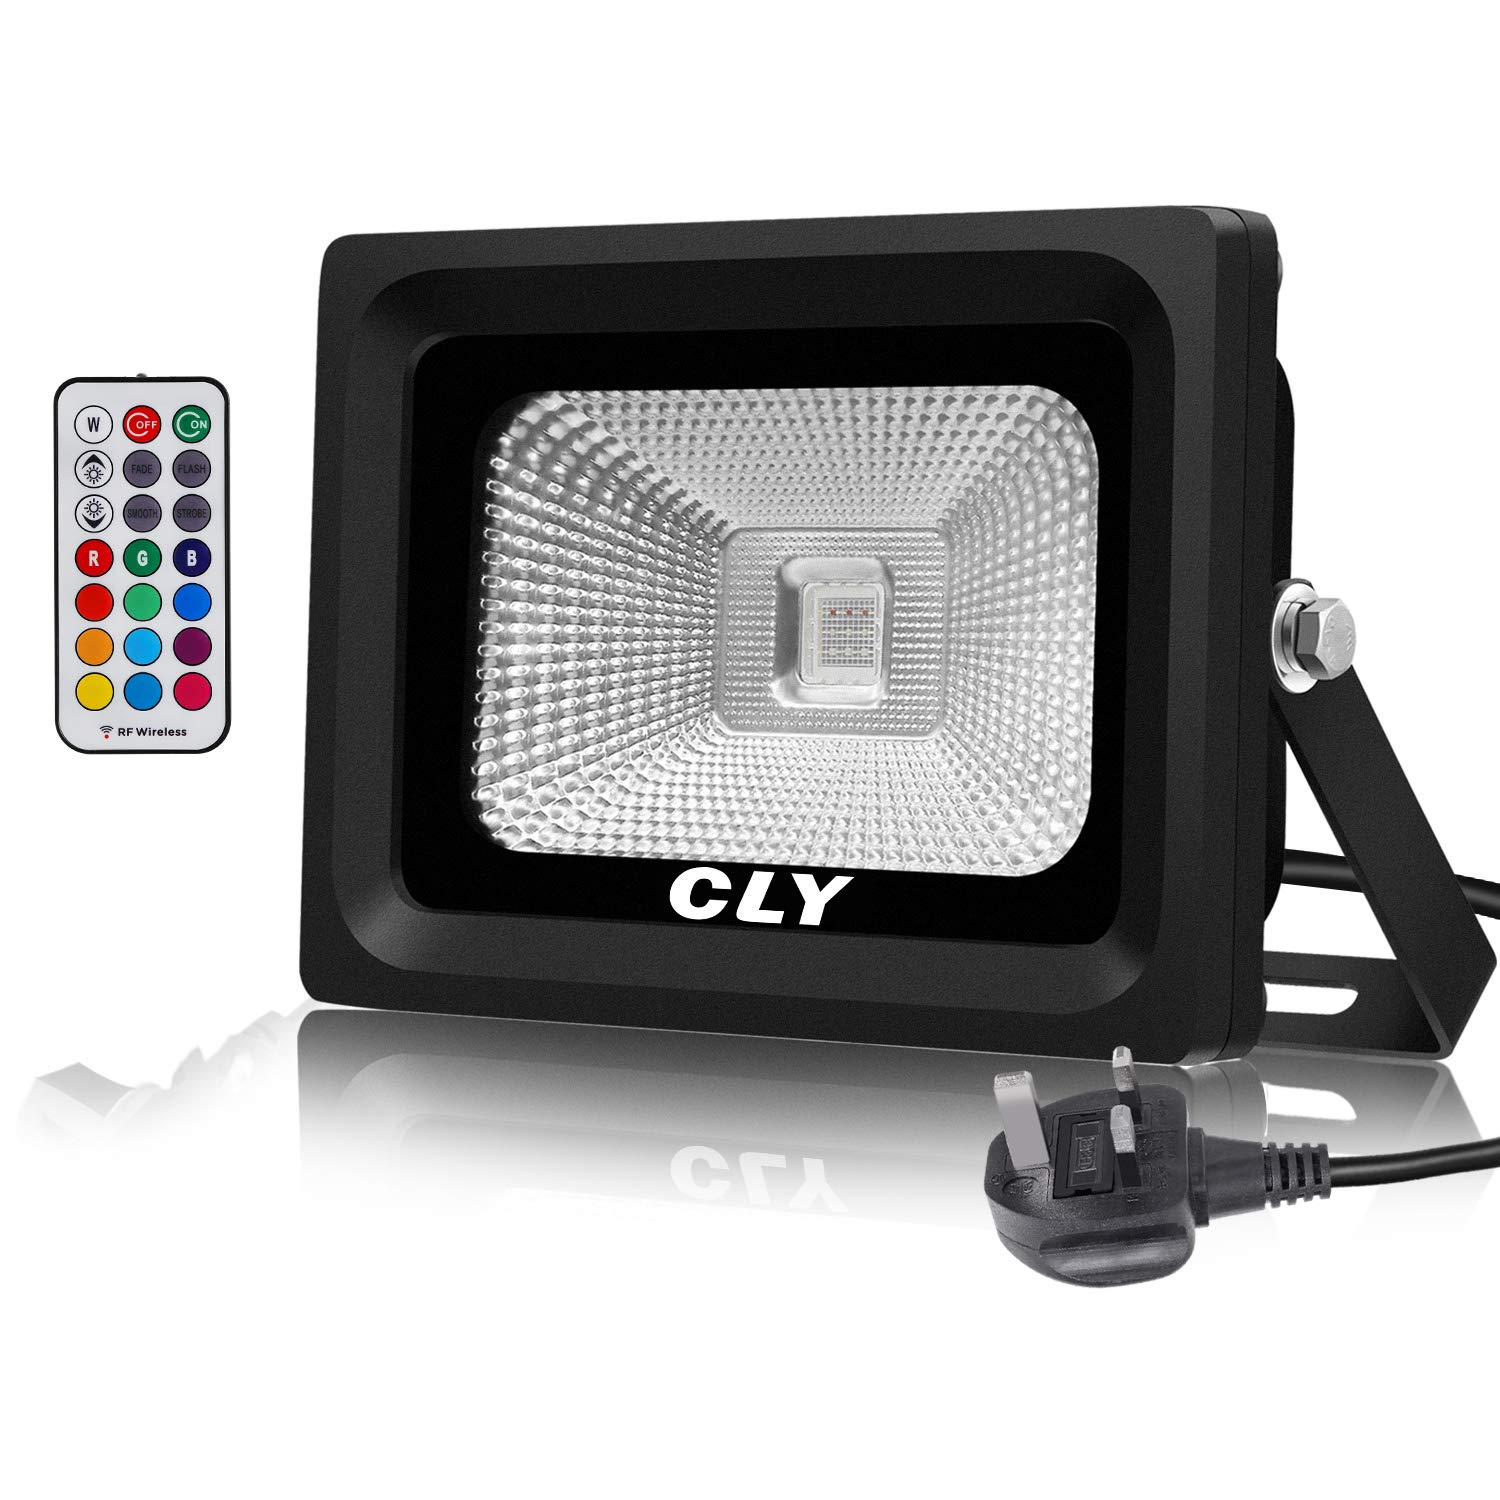 CLY 10W RGB Flood Lights, Colour Changing Lights with Remote Control, 4 Modes 16 Colours Light, Dimmable Party Lights, Waterproof LED Decking Spotlight for Halloween,Christmas,Garden